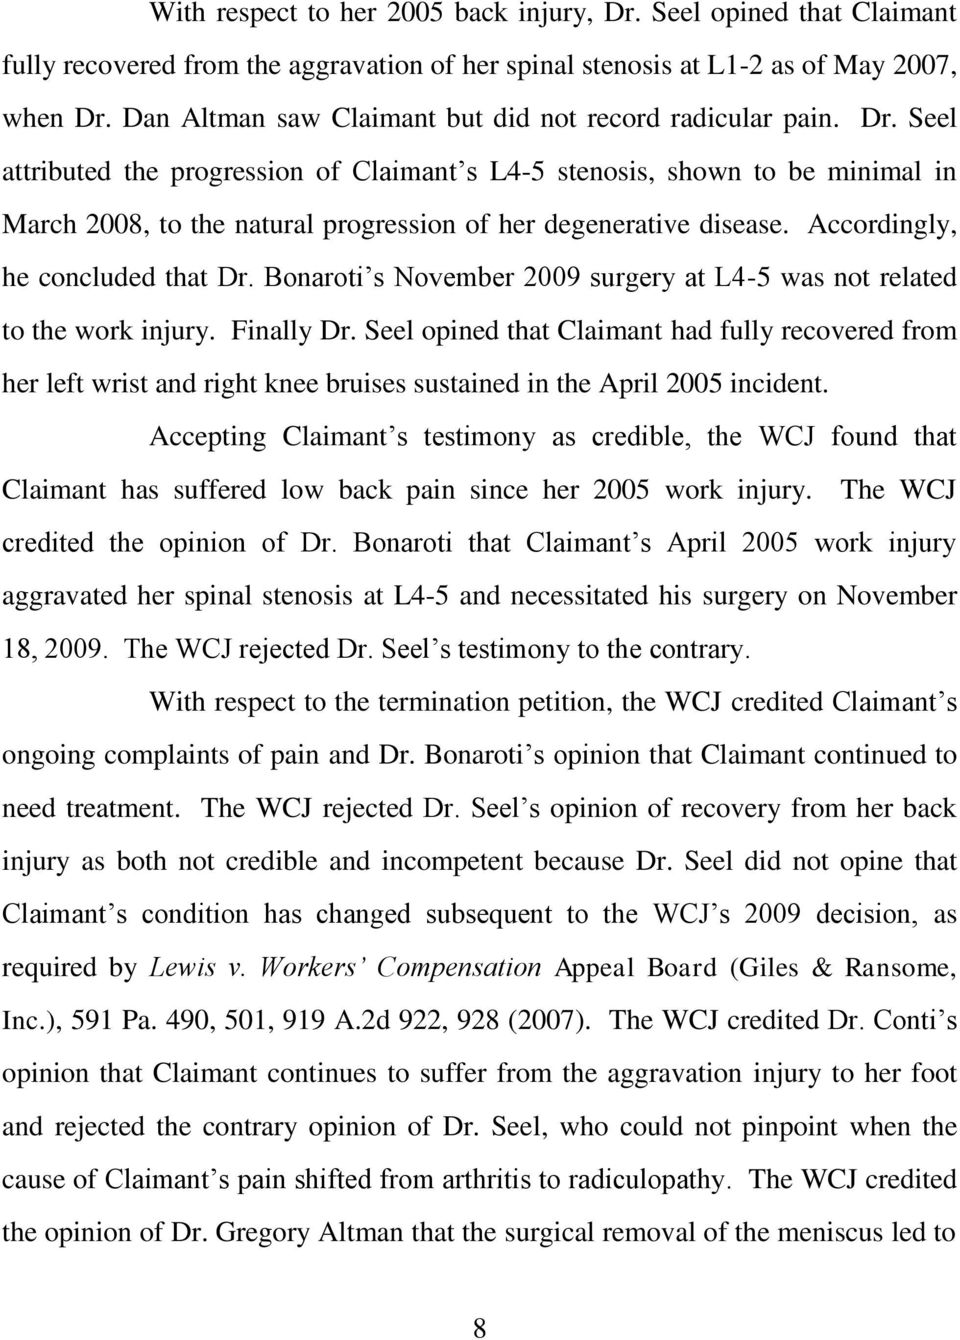 Seel attributed the progression of Claimant s L4-5 stenosis, shown to be minimal in March 2008, to the natural progression of her degenerative disease. Accordingly, he concluded that Dr.